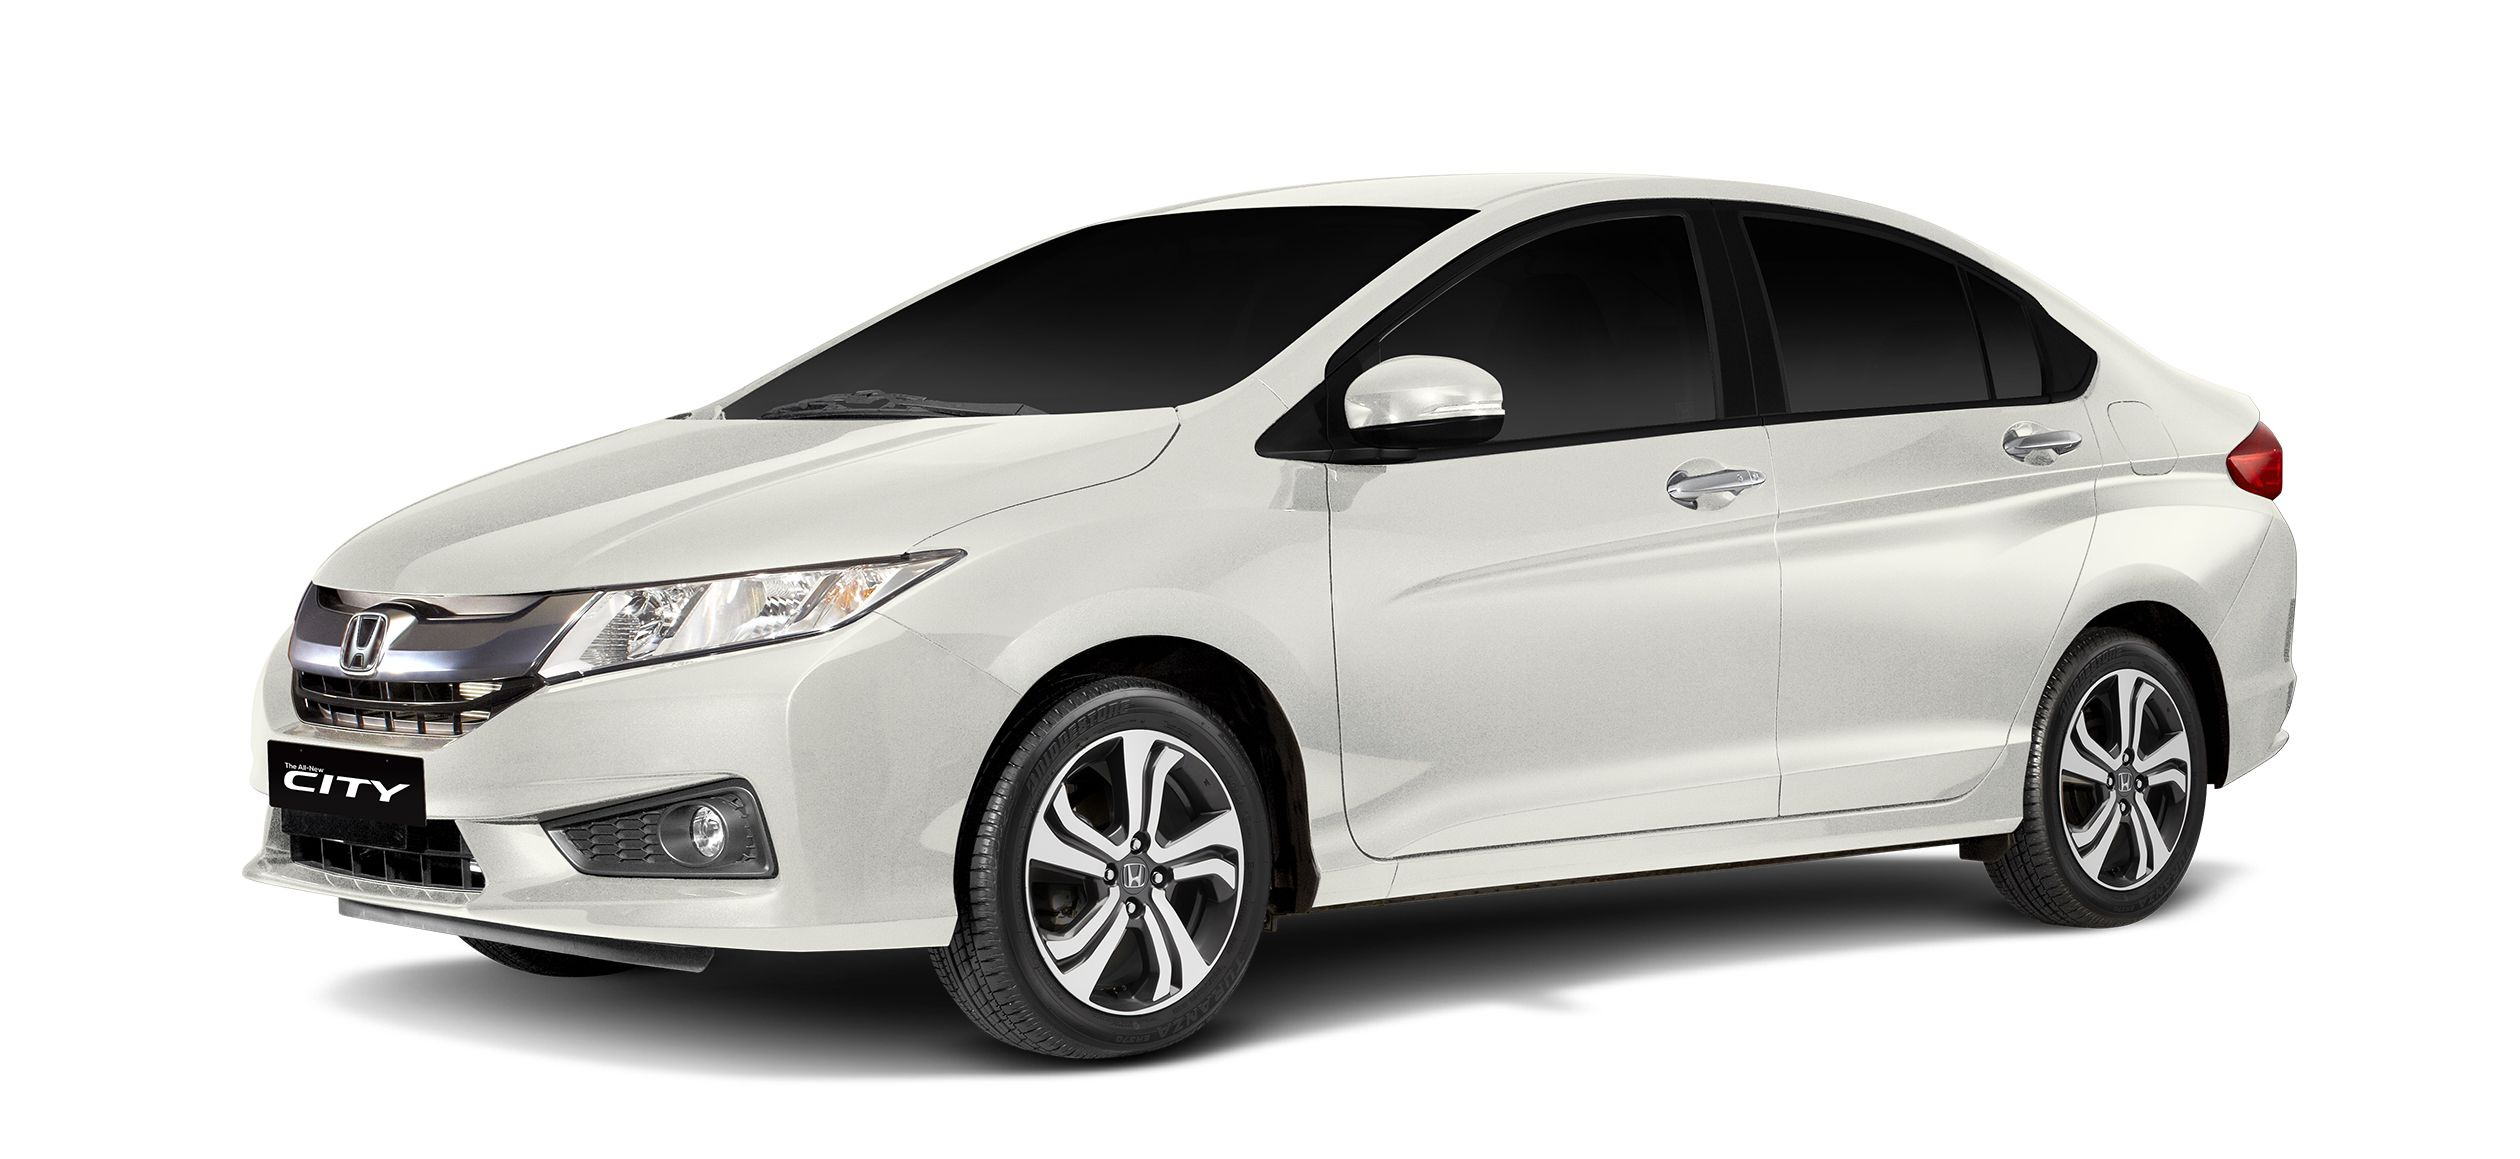 Honda Cars Philippines Price List